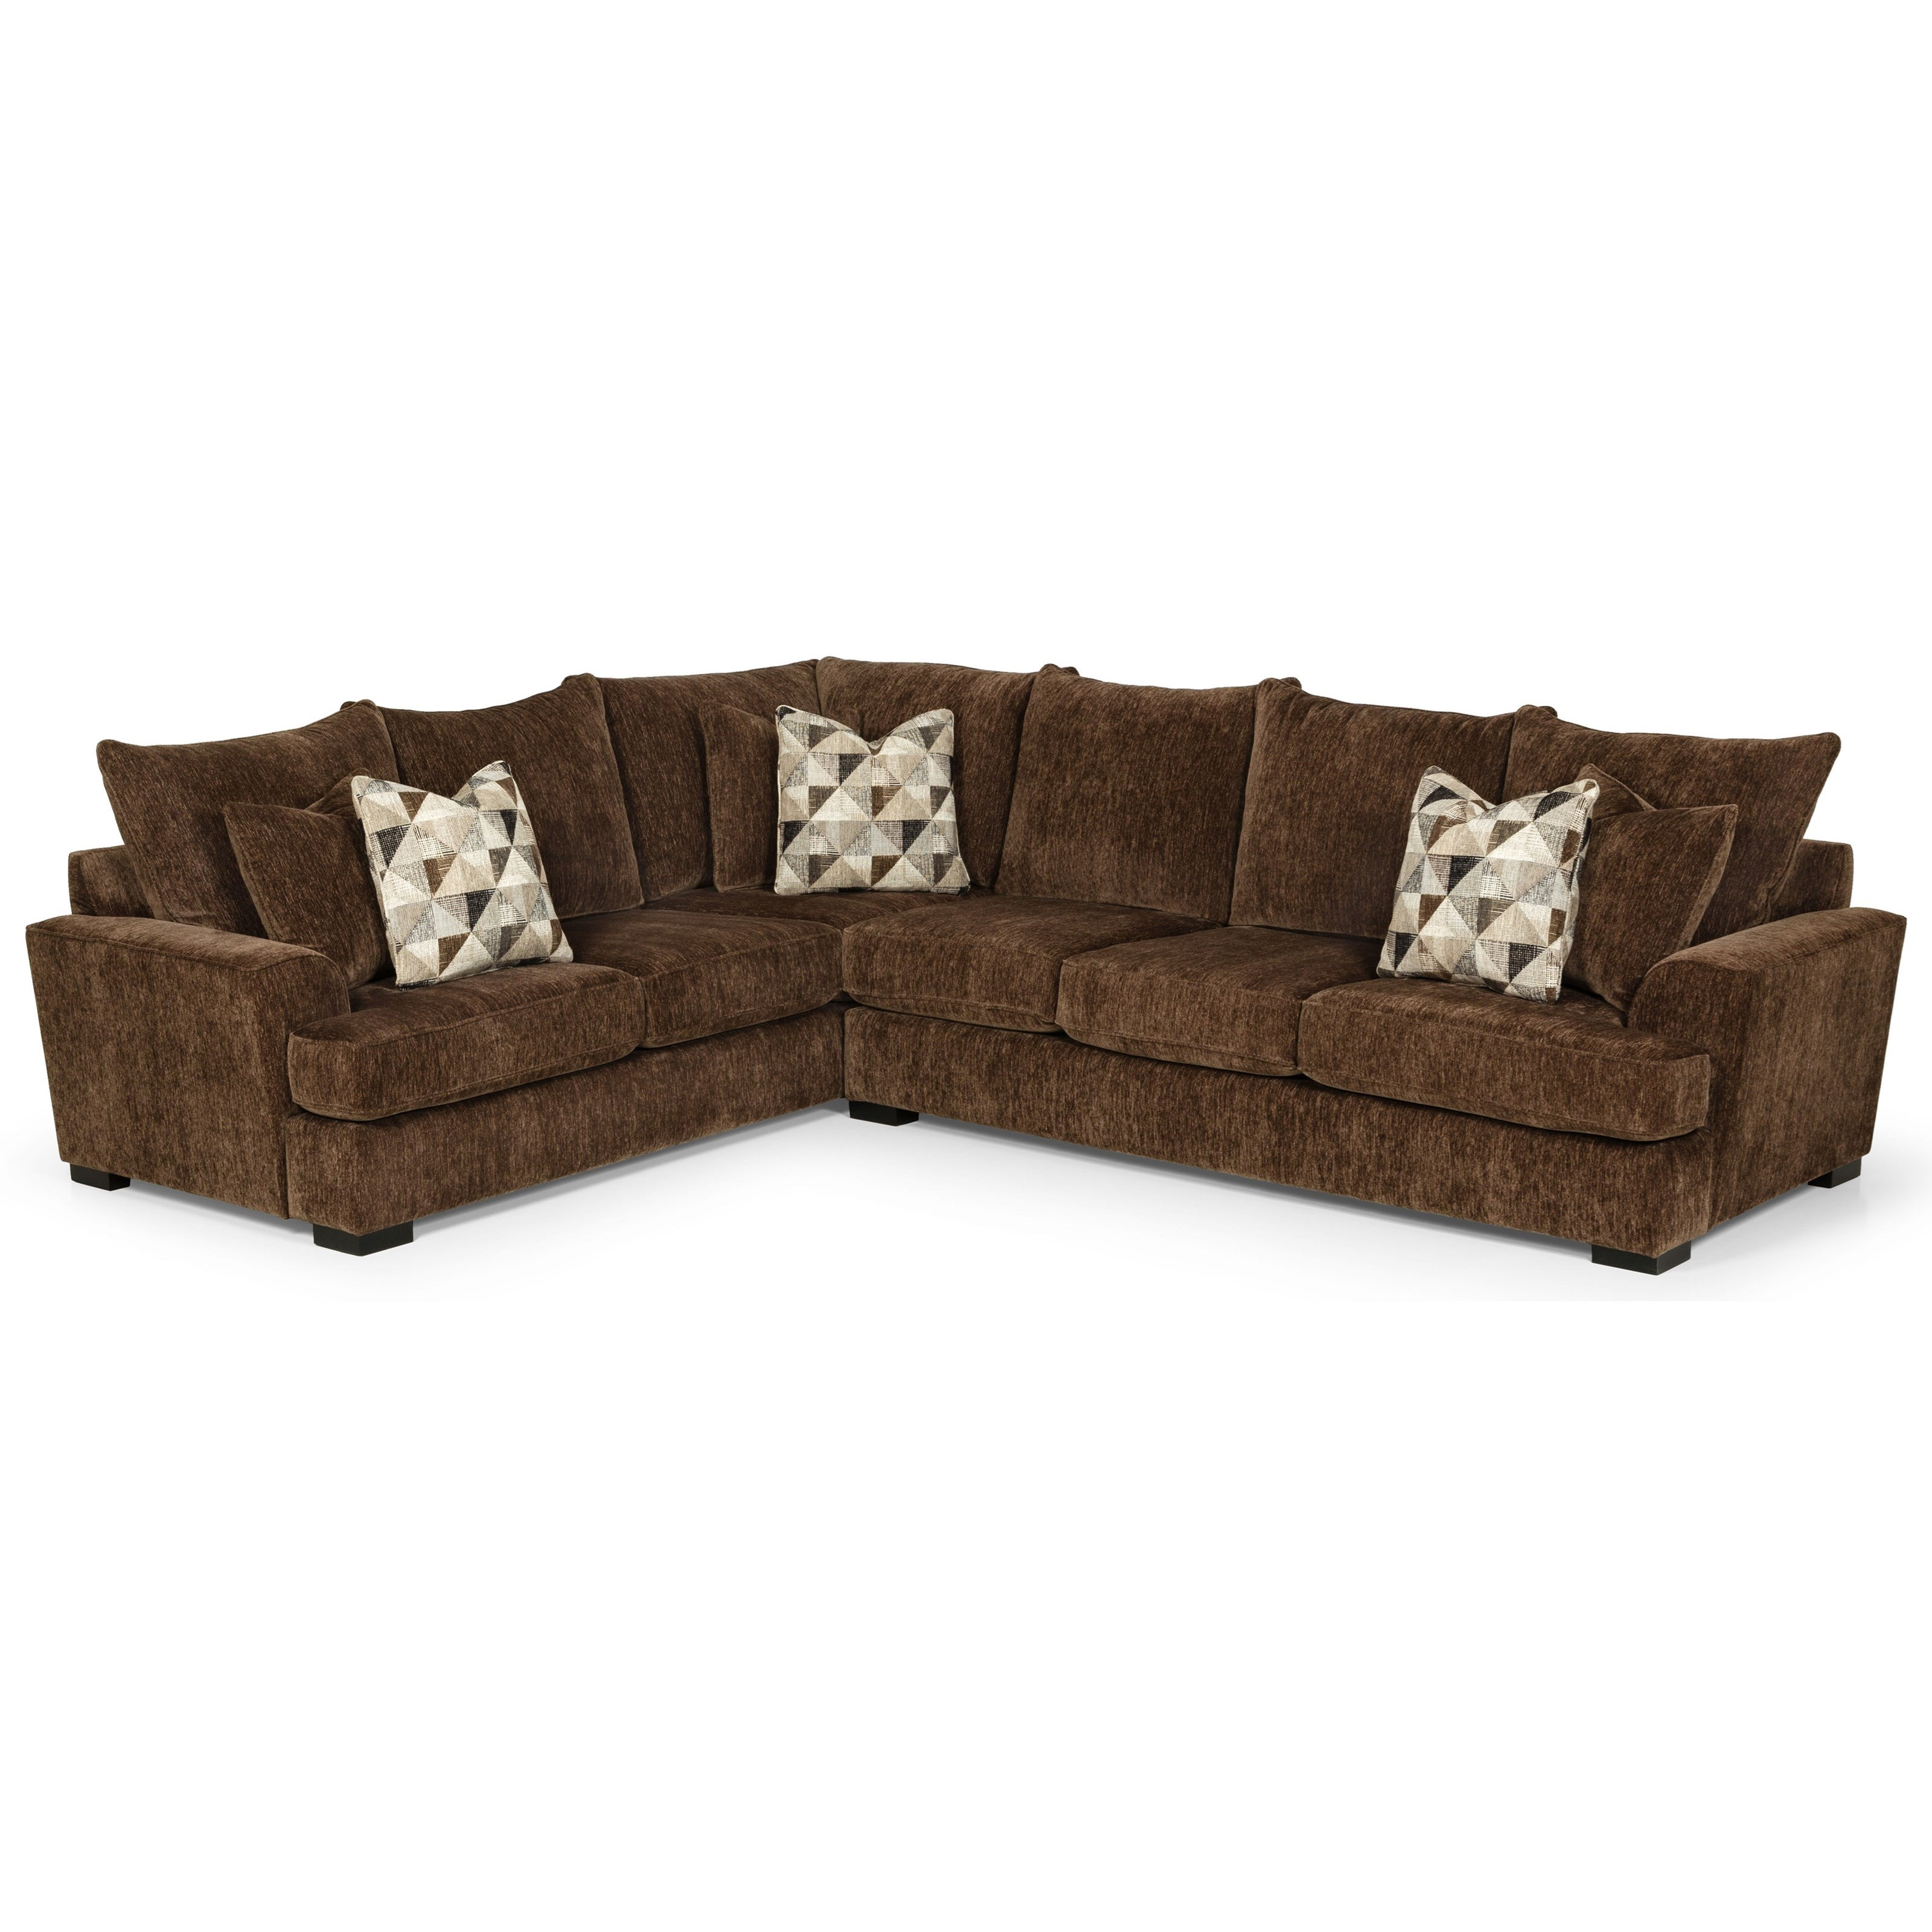 515 5-Seat Sectional Sofa w/ RAF Sofa by Stanton at Wilson's Furniture